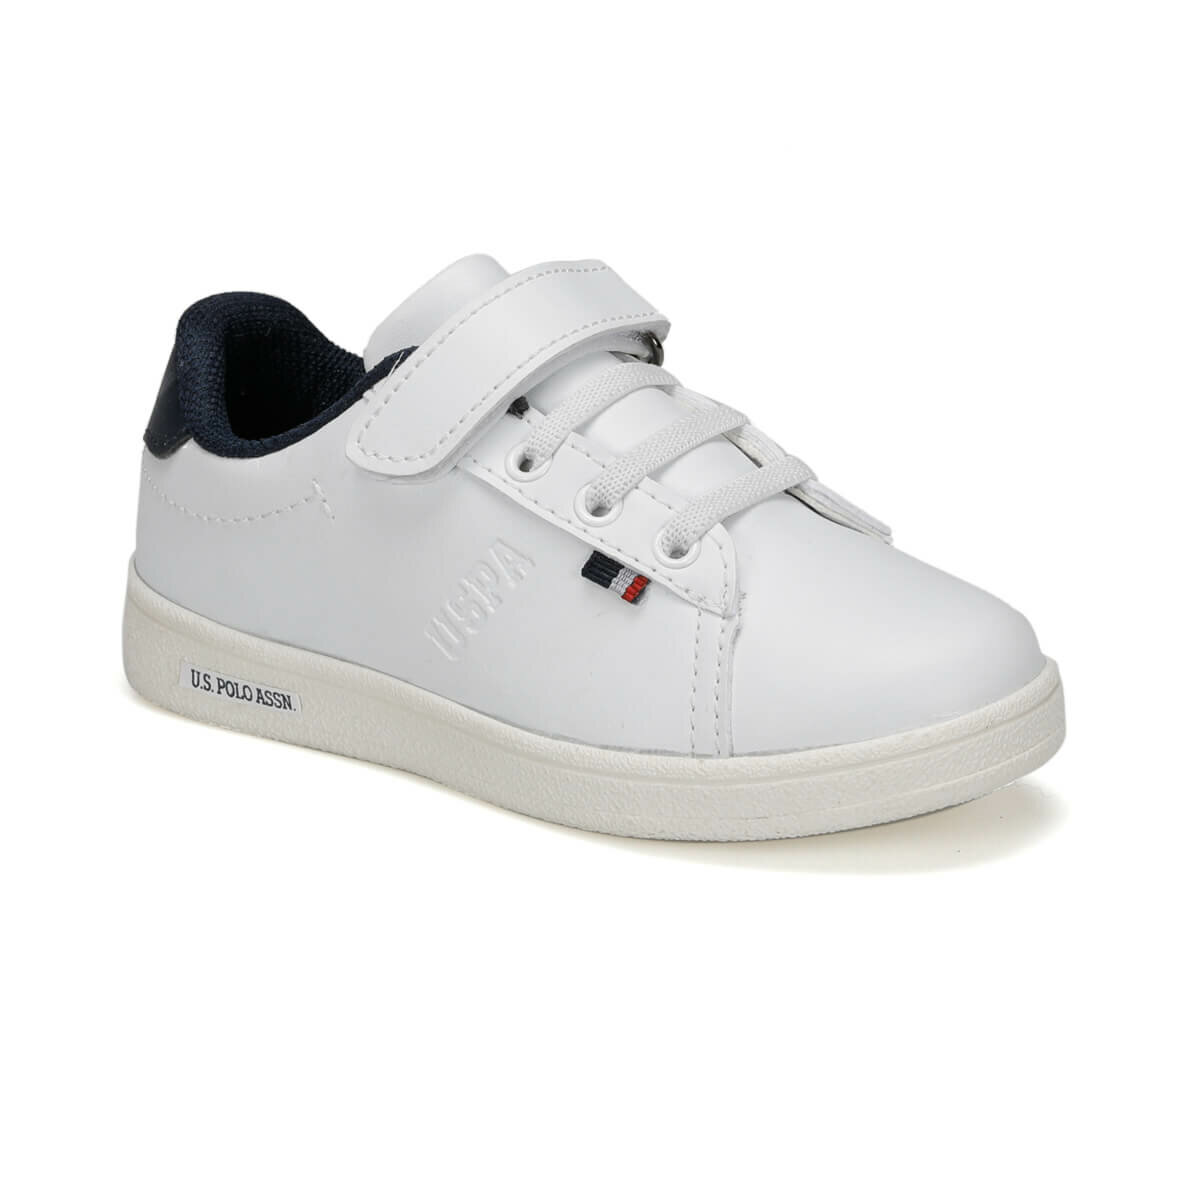 FLO FRANCO 9PR White Male Child Sneaker Shoes U.S. POLO ASSN.